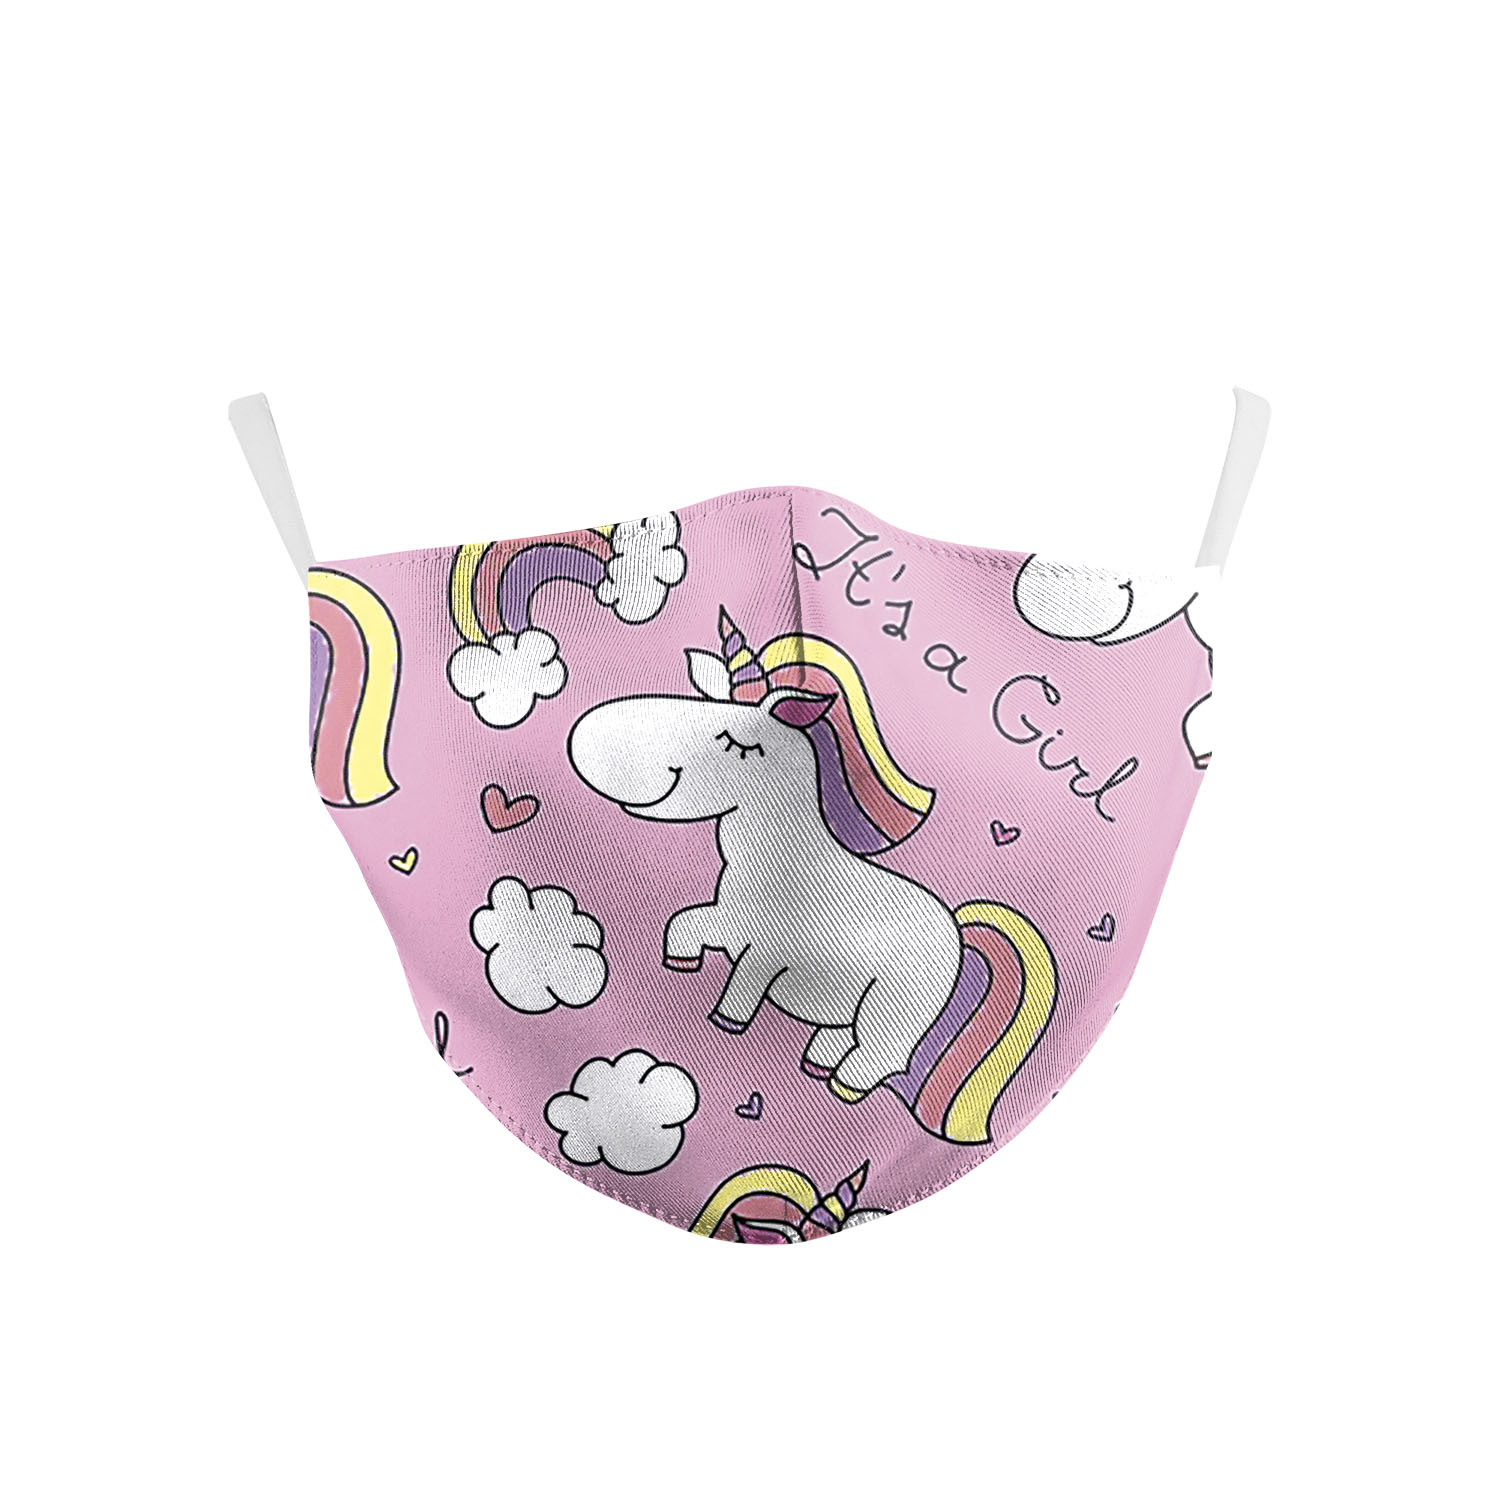 Cute Cat Pink Unicorn Kids Face Masks Print Fabric Masks Washable PM 2.5 Protective Dust Children Mouth-Muffle Earloop Reusable